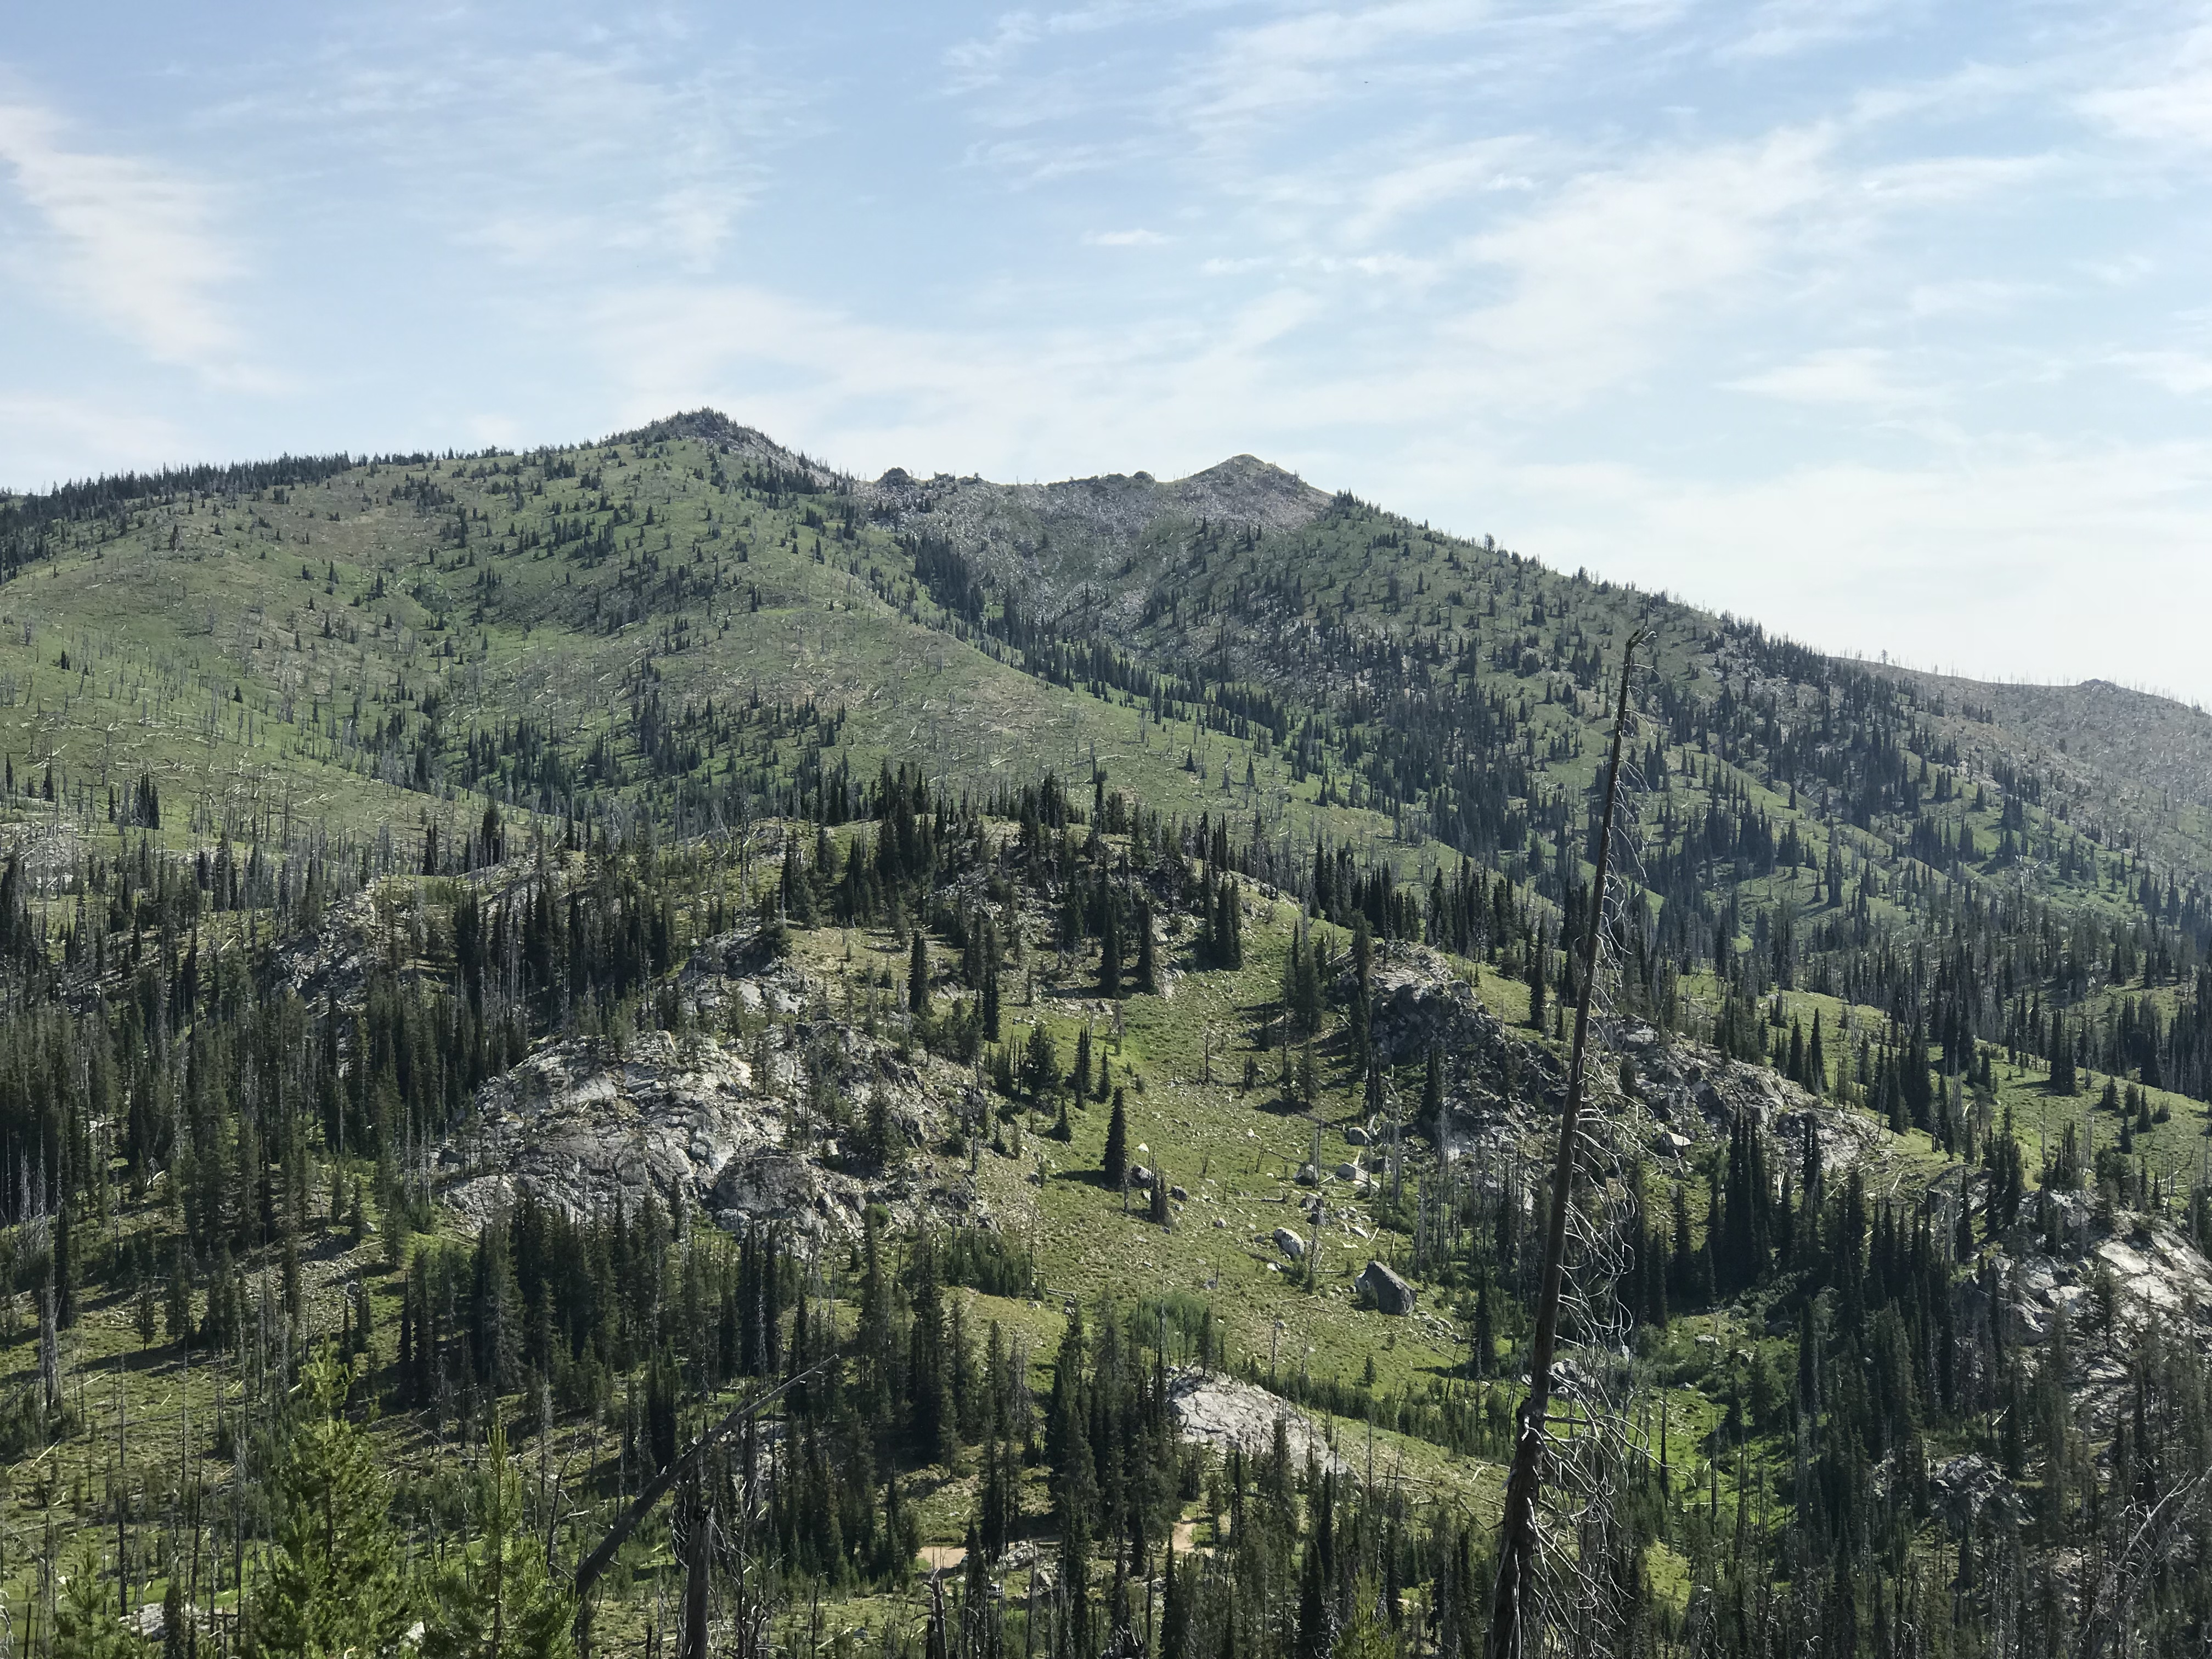 The south side of Squaw Point viewed from Peak 7365.